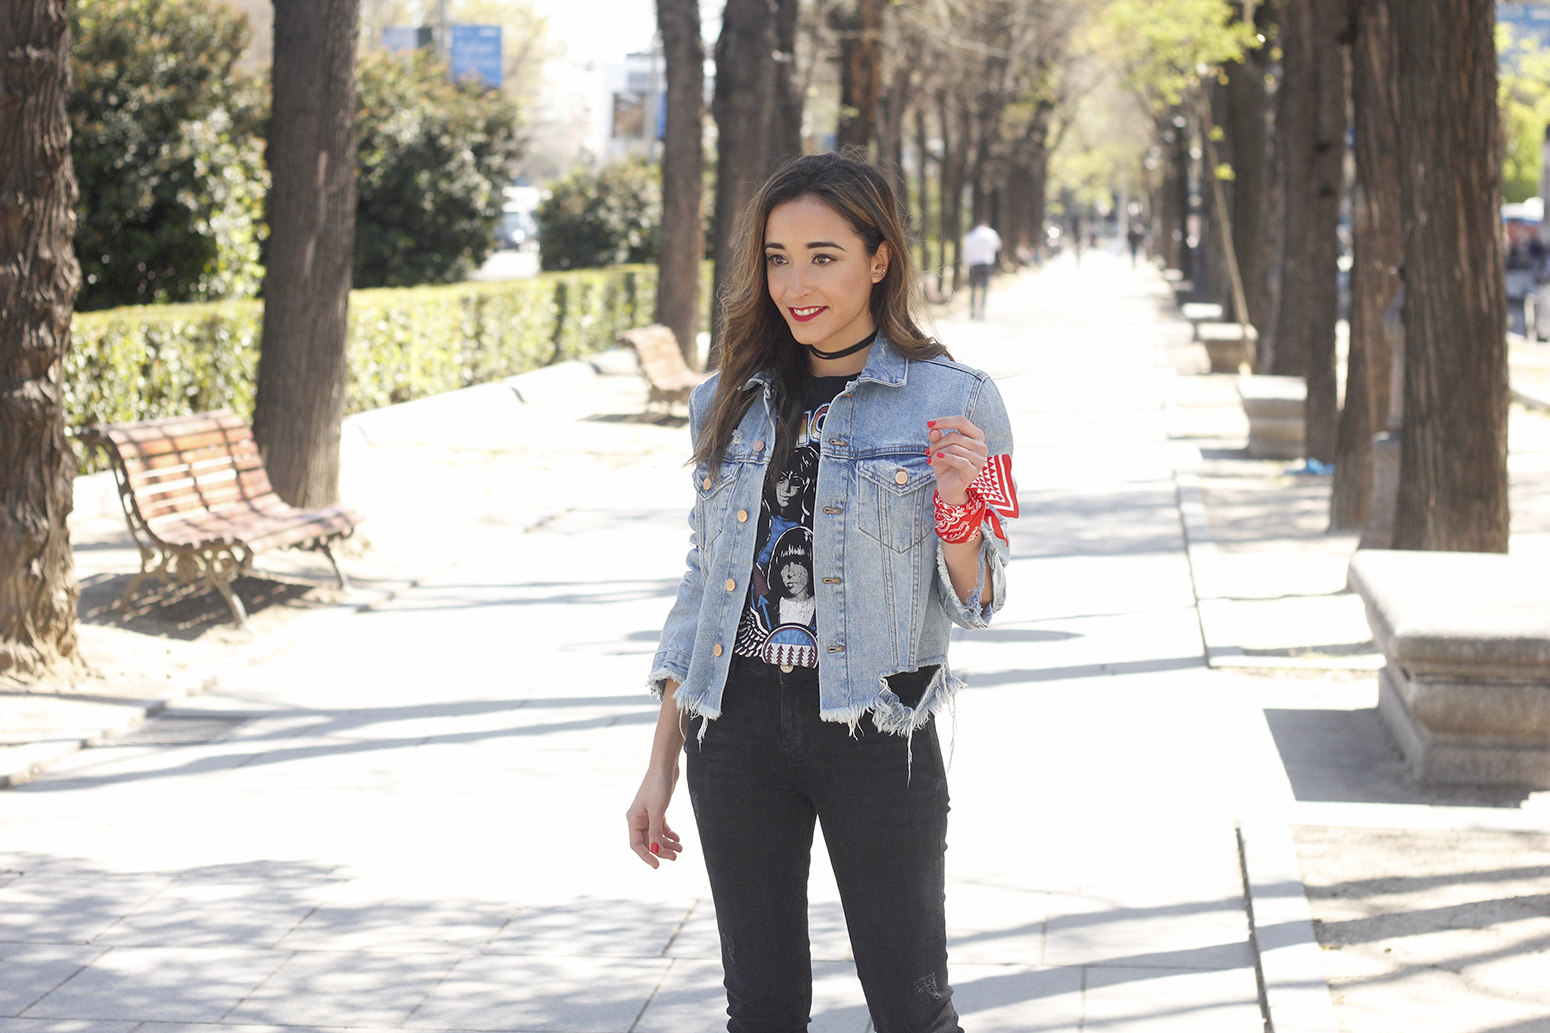 How to Wear a Jean Jacket With Any Outfit